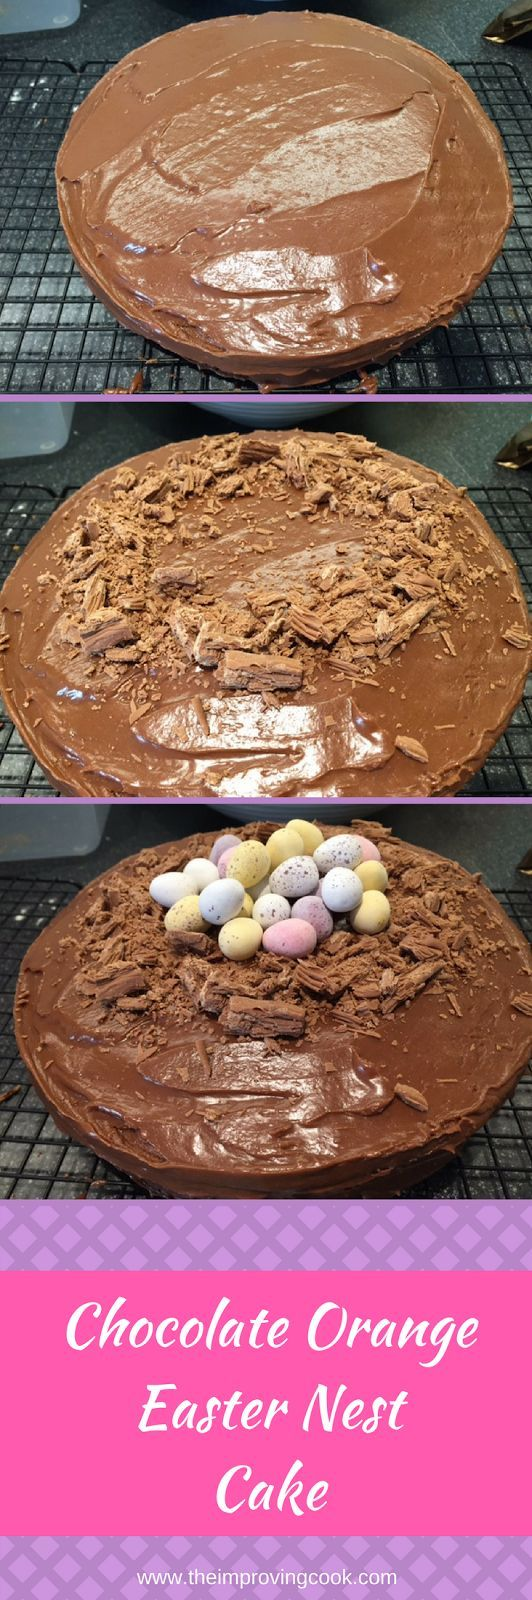 The Improving Cook- Chocolate Orange Easter Nest Cake Classic yellow sponge cake with orange curd filling and real chocolate icing. Topped with crumbled Flake and Cadburys Mini Eggs. Perfect for Easter